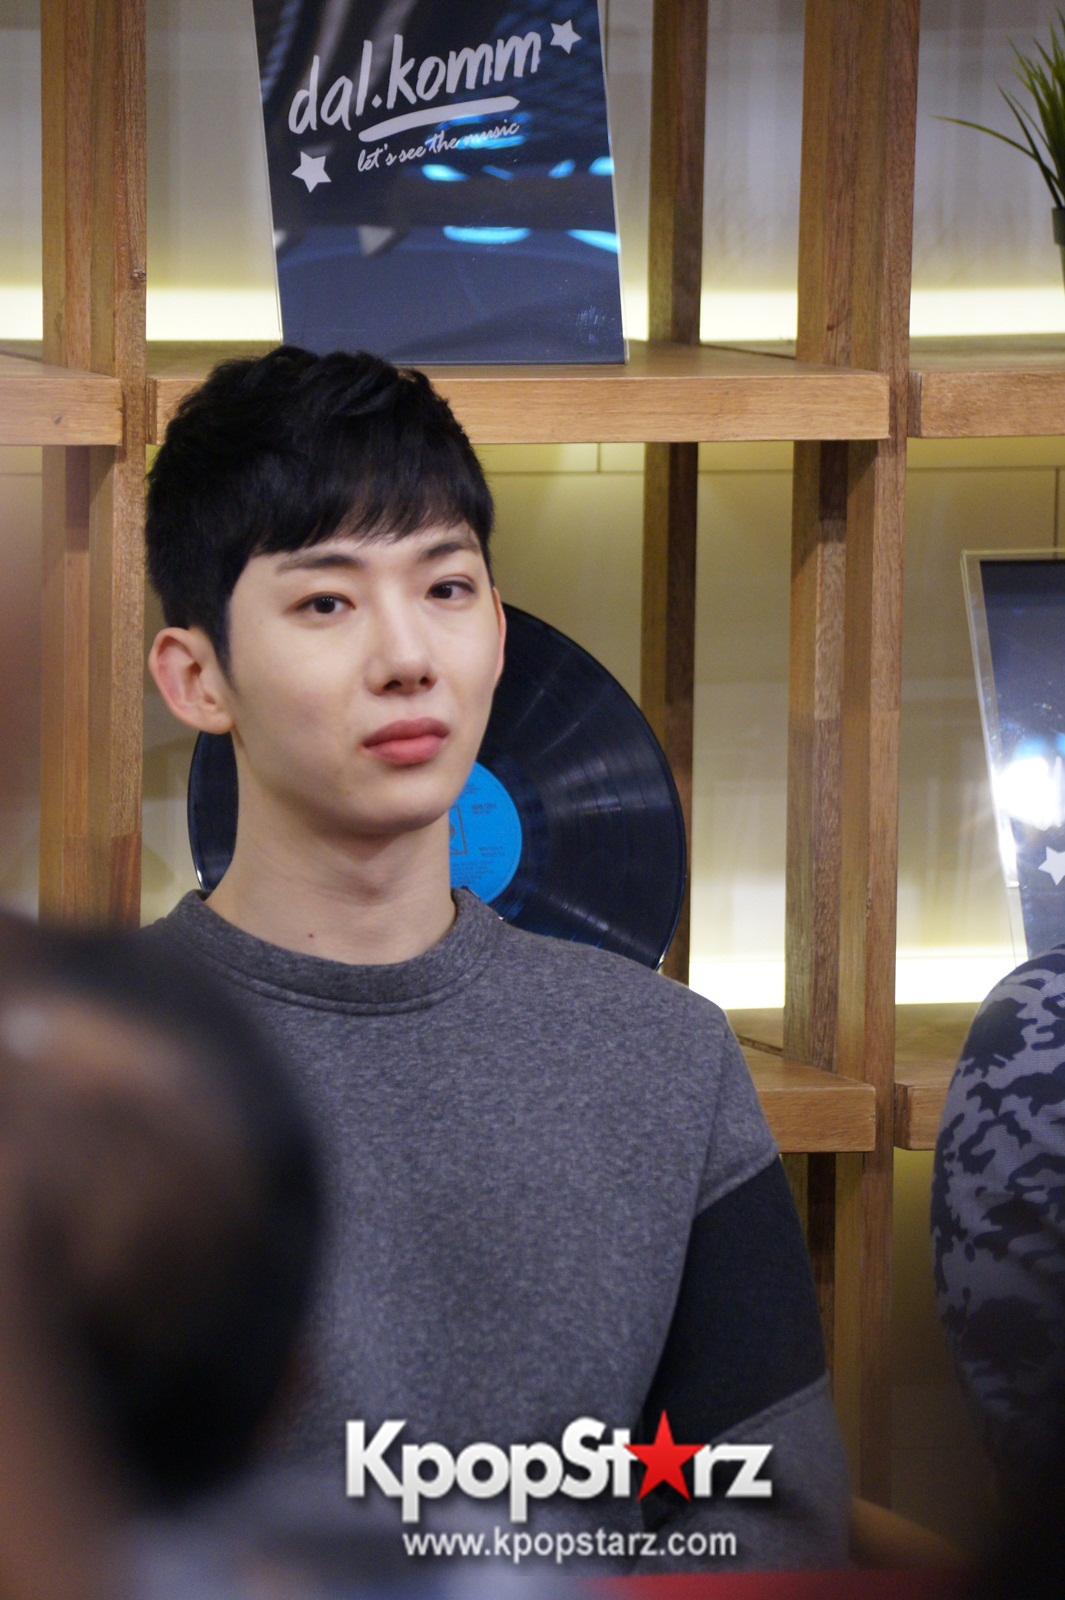 2AM Attends Dal.Komm Coffee Grand Opening in Malaysia - Nov 29, 2014 [PHOTOS]